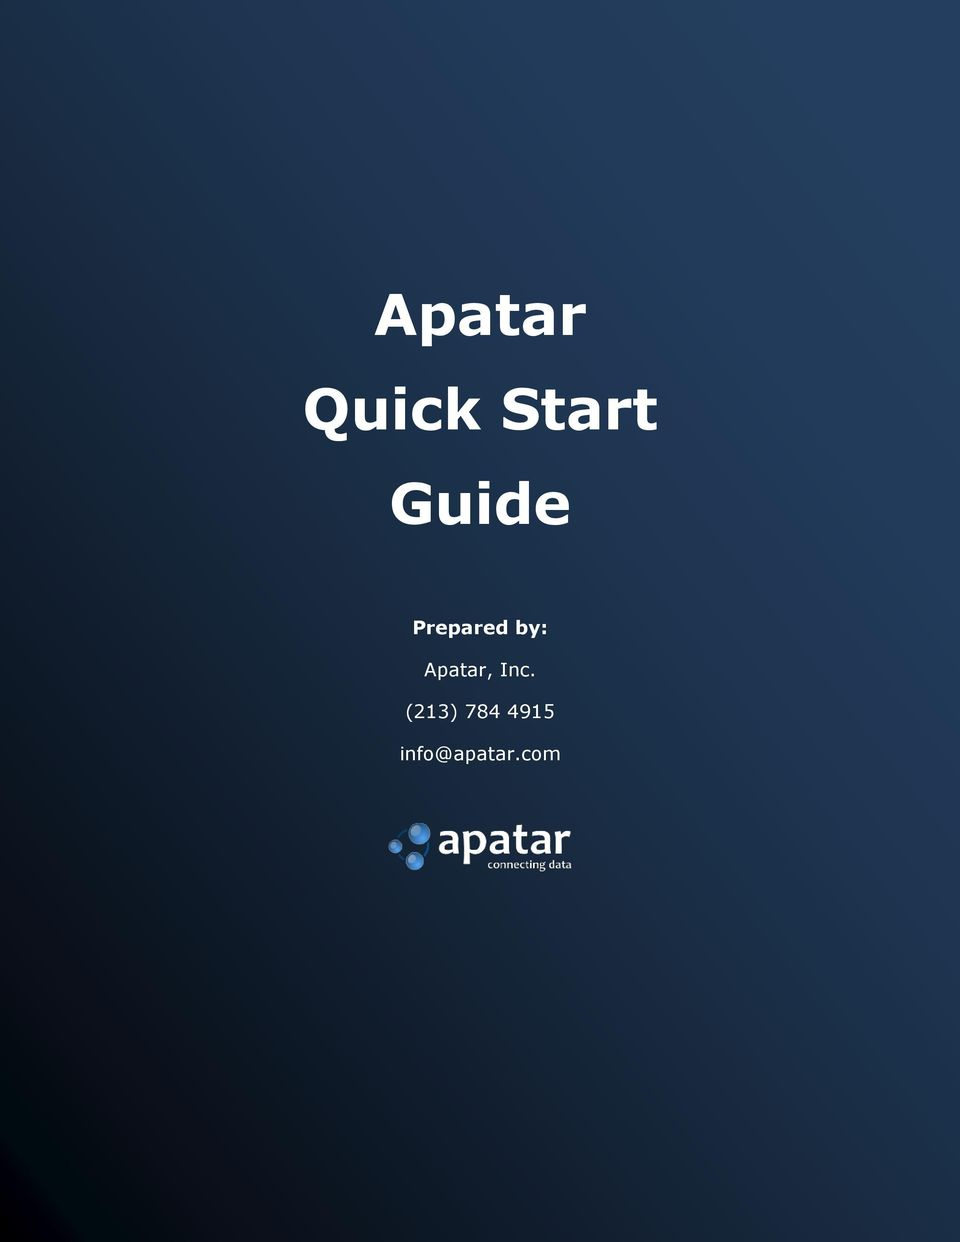 Guide Prepared by: Apatar,